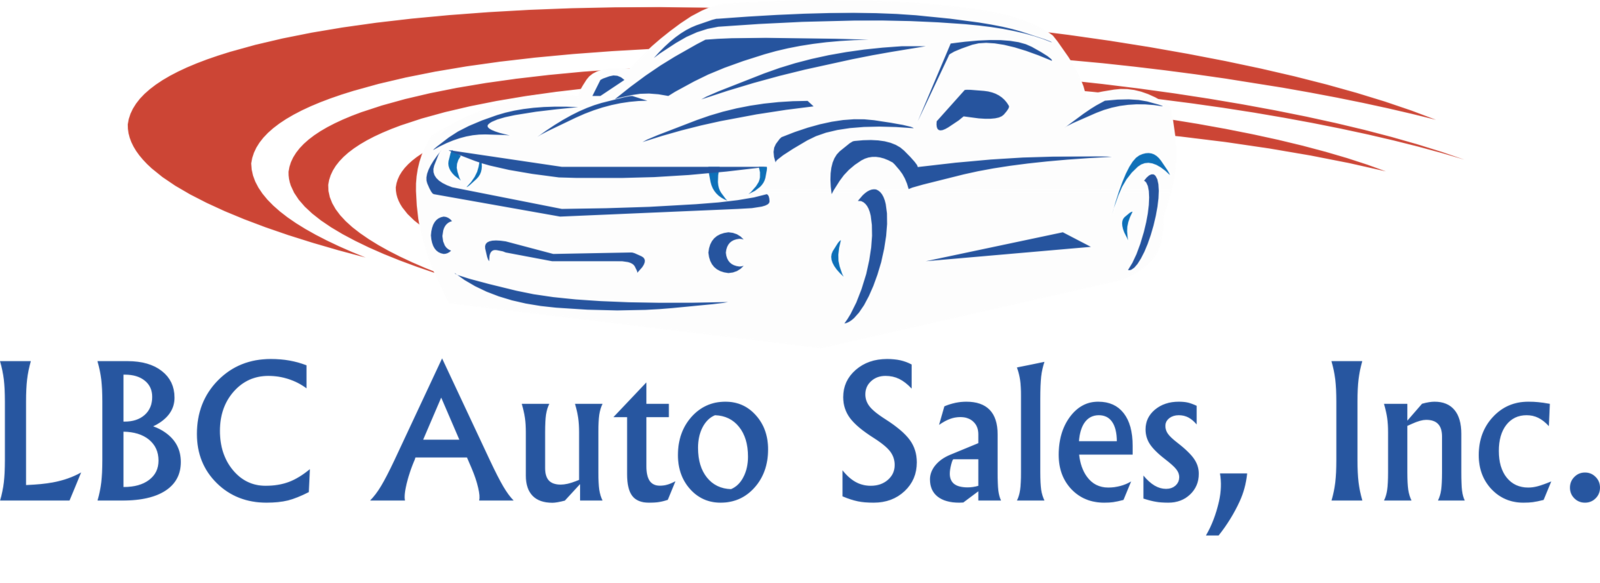 Lbc Auto Sales Inc Houston Tx Read Consumer Reviews